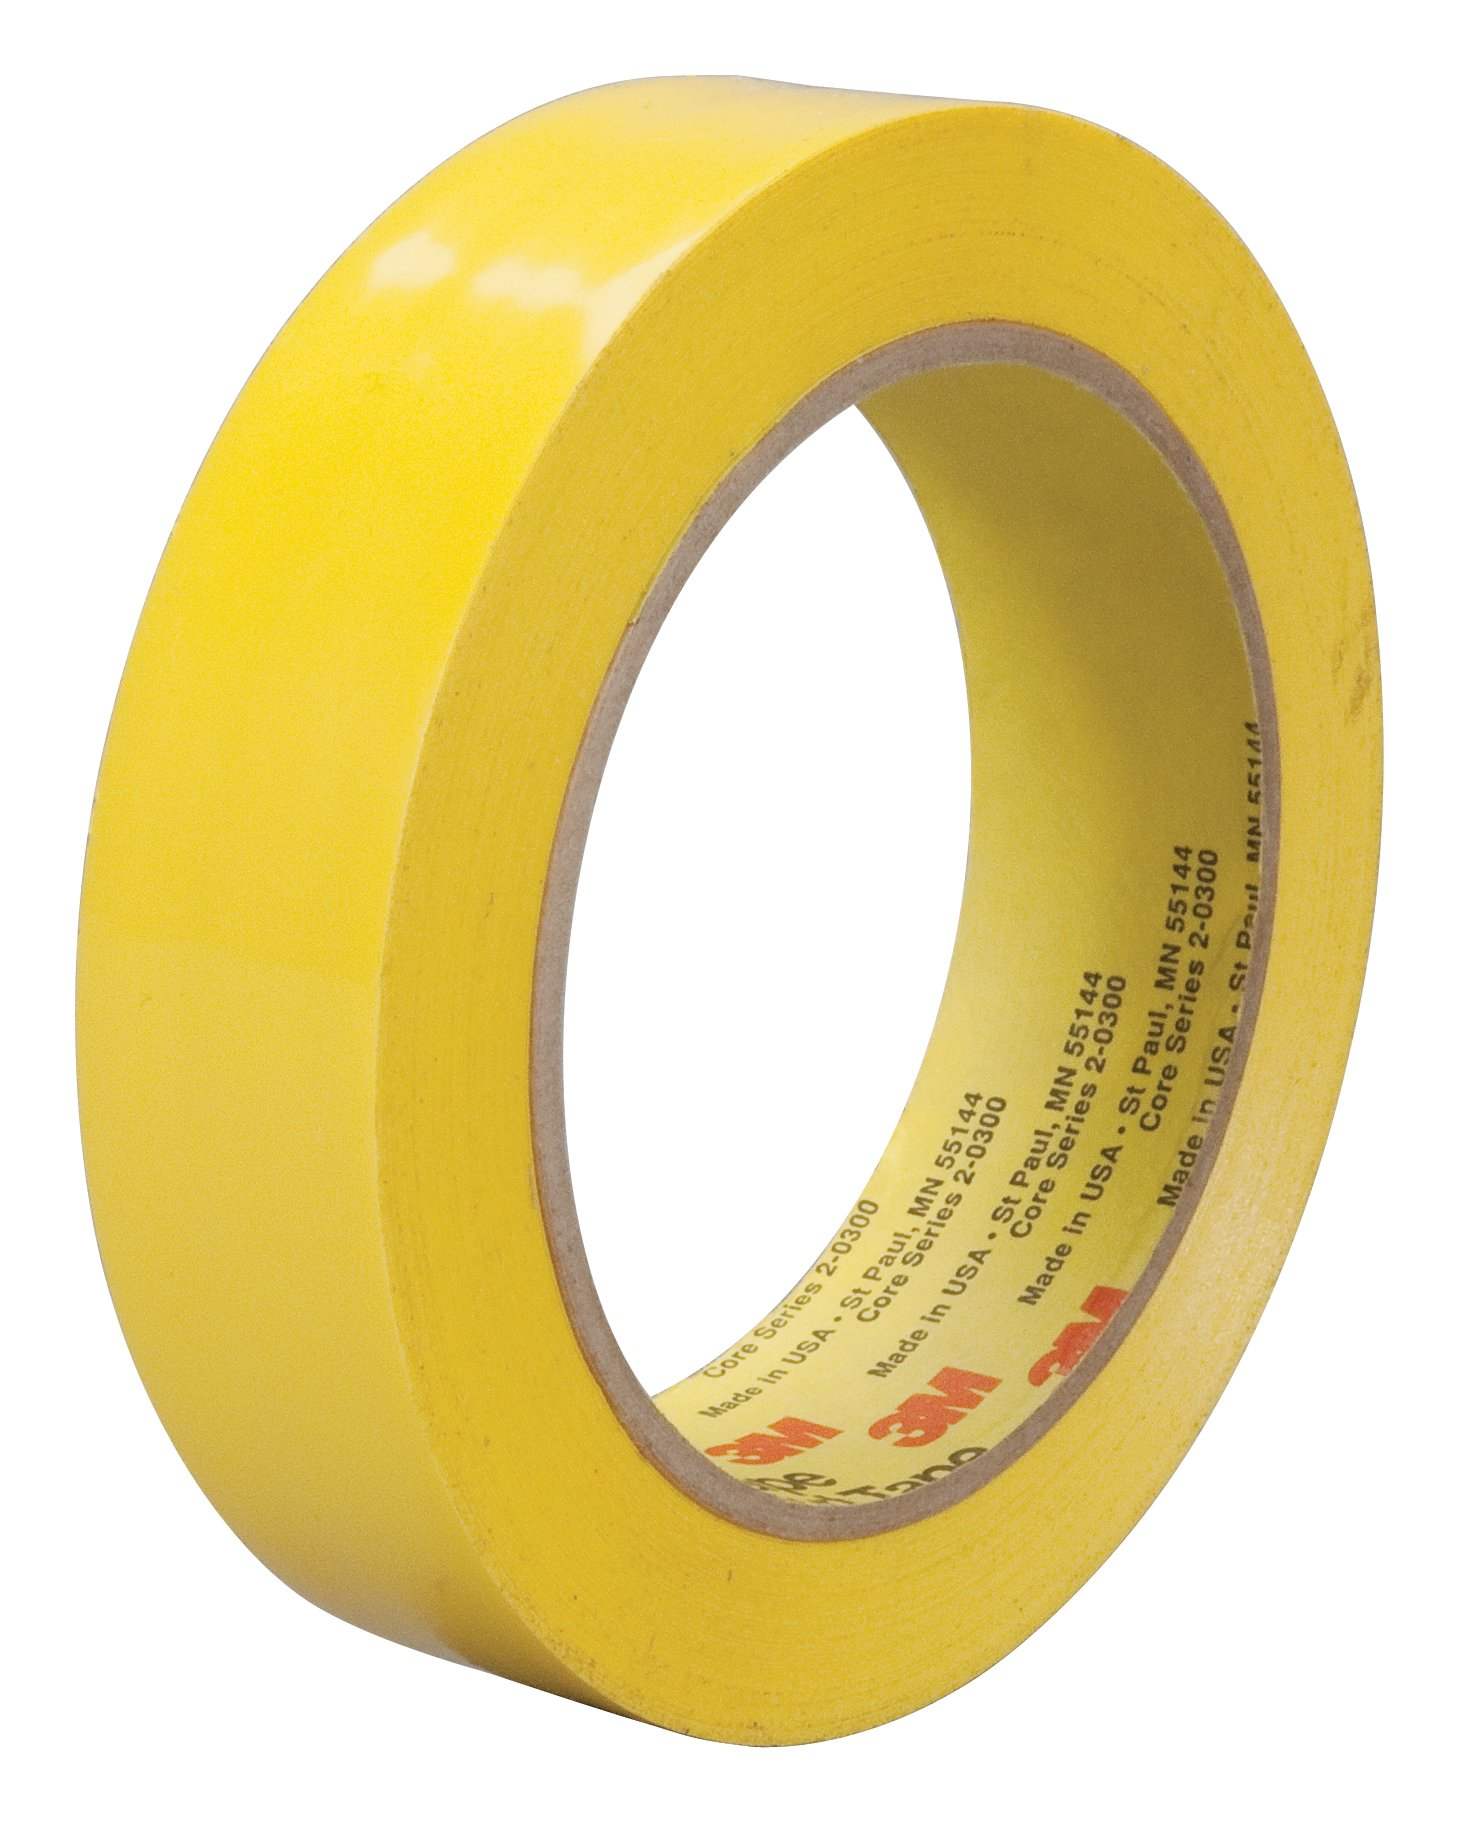 3M Polyethylene Film Tape 483 Yellow, 1 in x 36 yd 5.3 mil, Conveniently Packaged (Pack of 1)